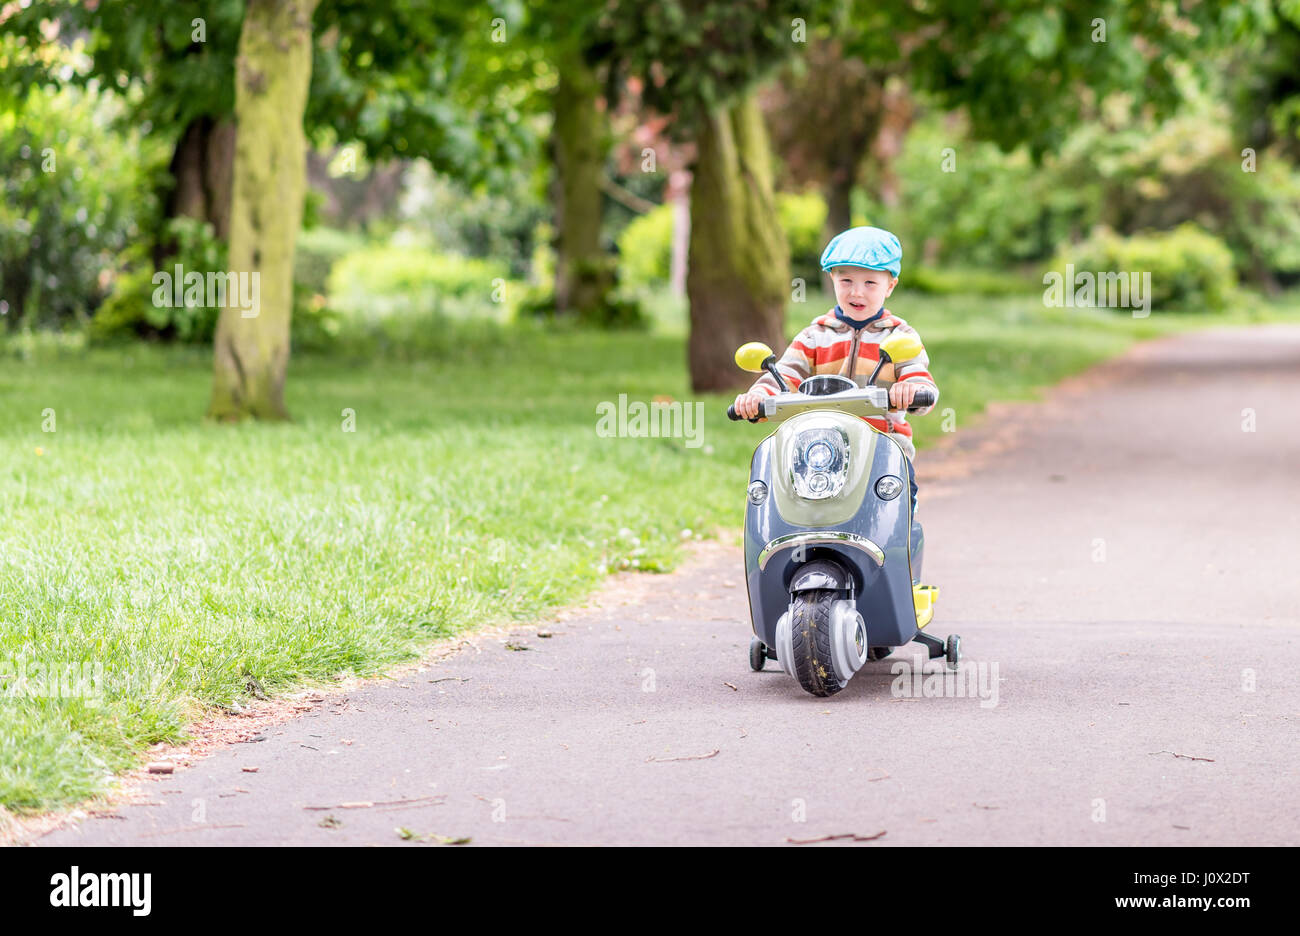 Day View Child Boy Riding Scooter Summer Park Stock Photo 138255652